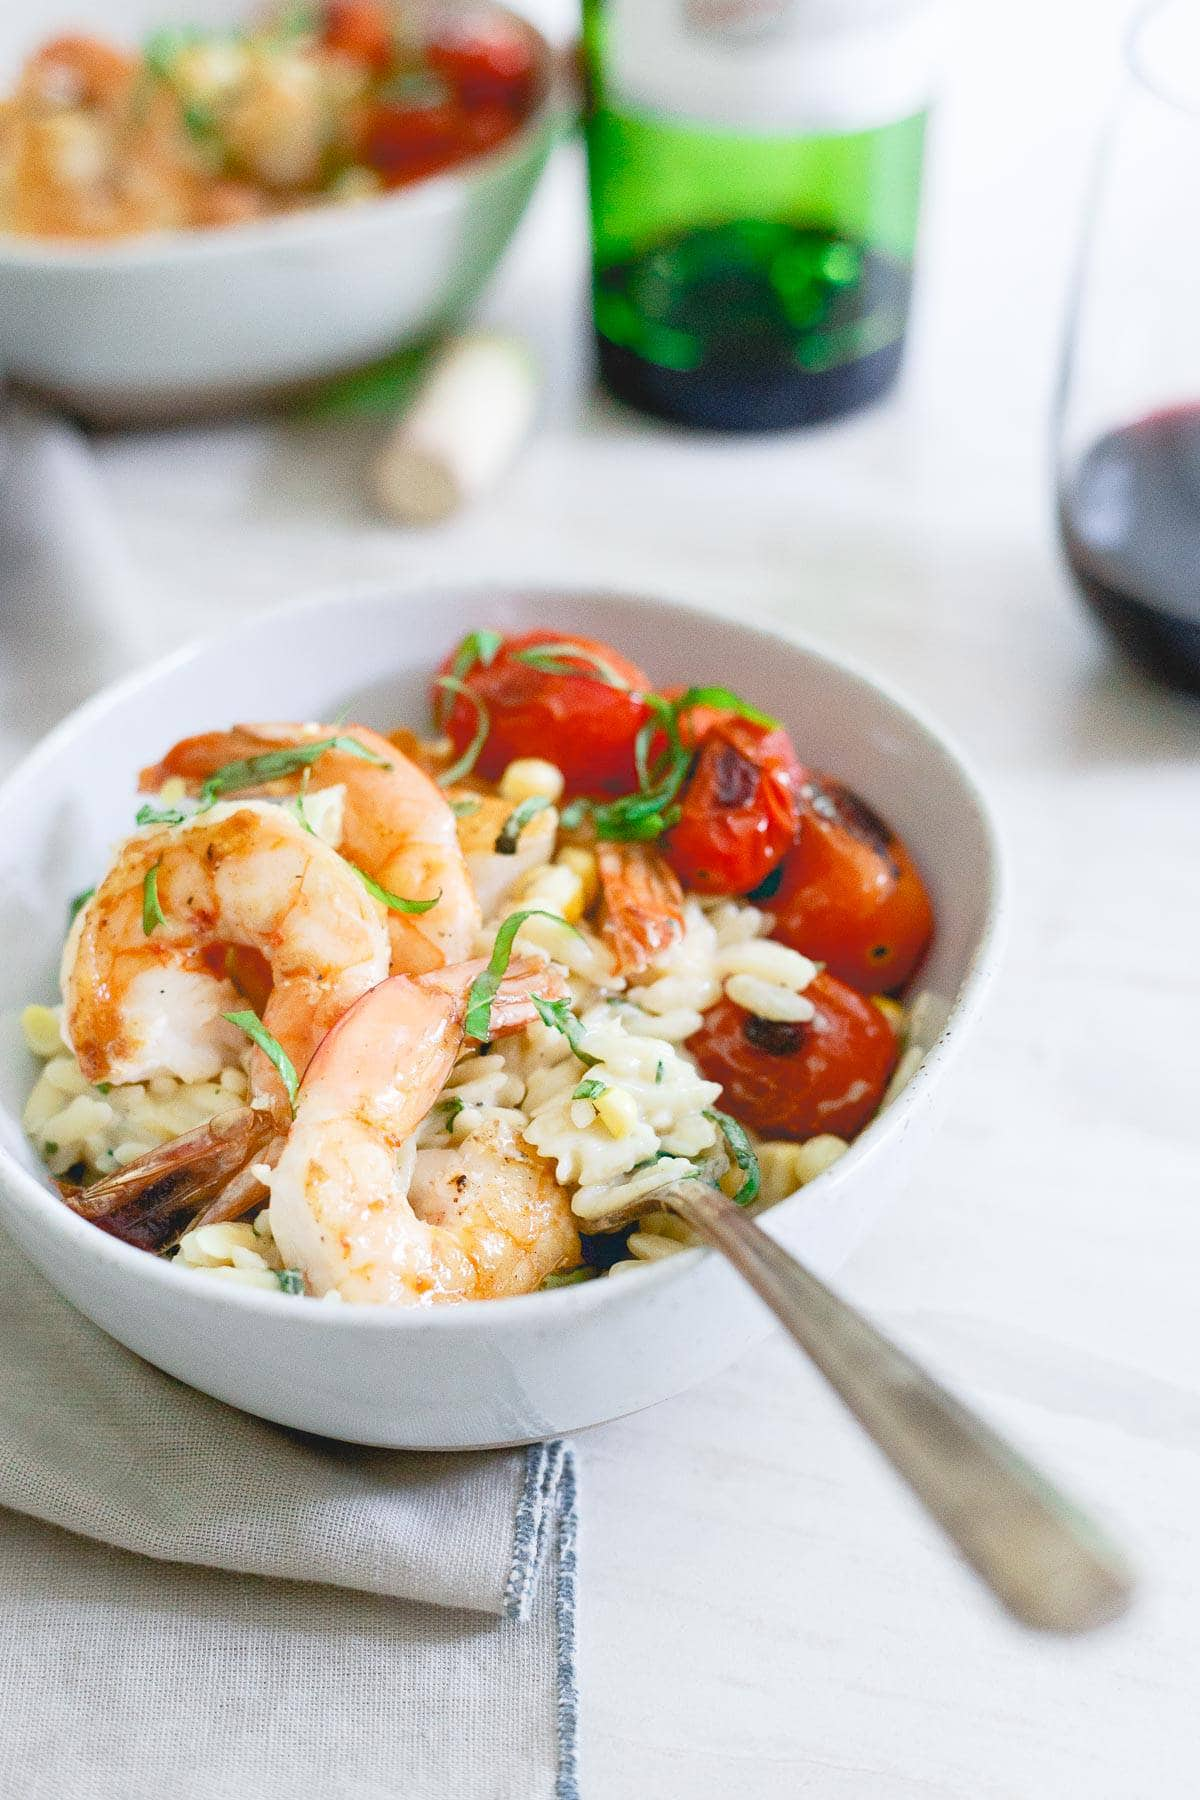 This elegant summer meal of brown butter shrimp with creamy parmesan orzo is perfect for a date night in.